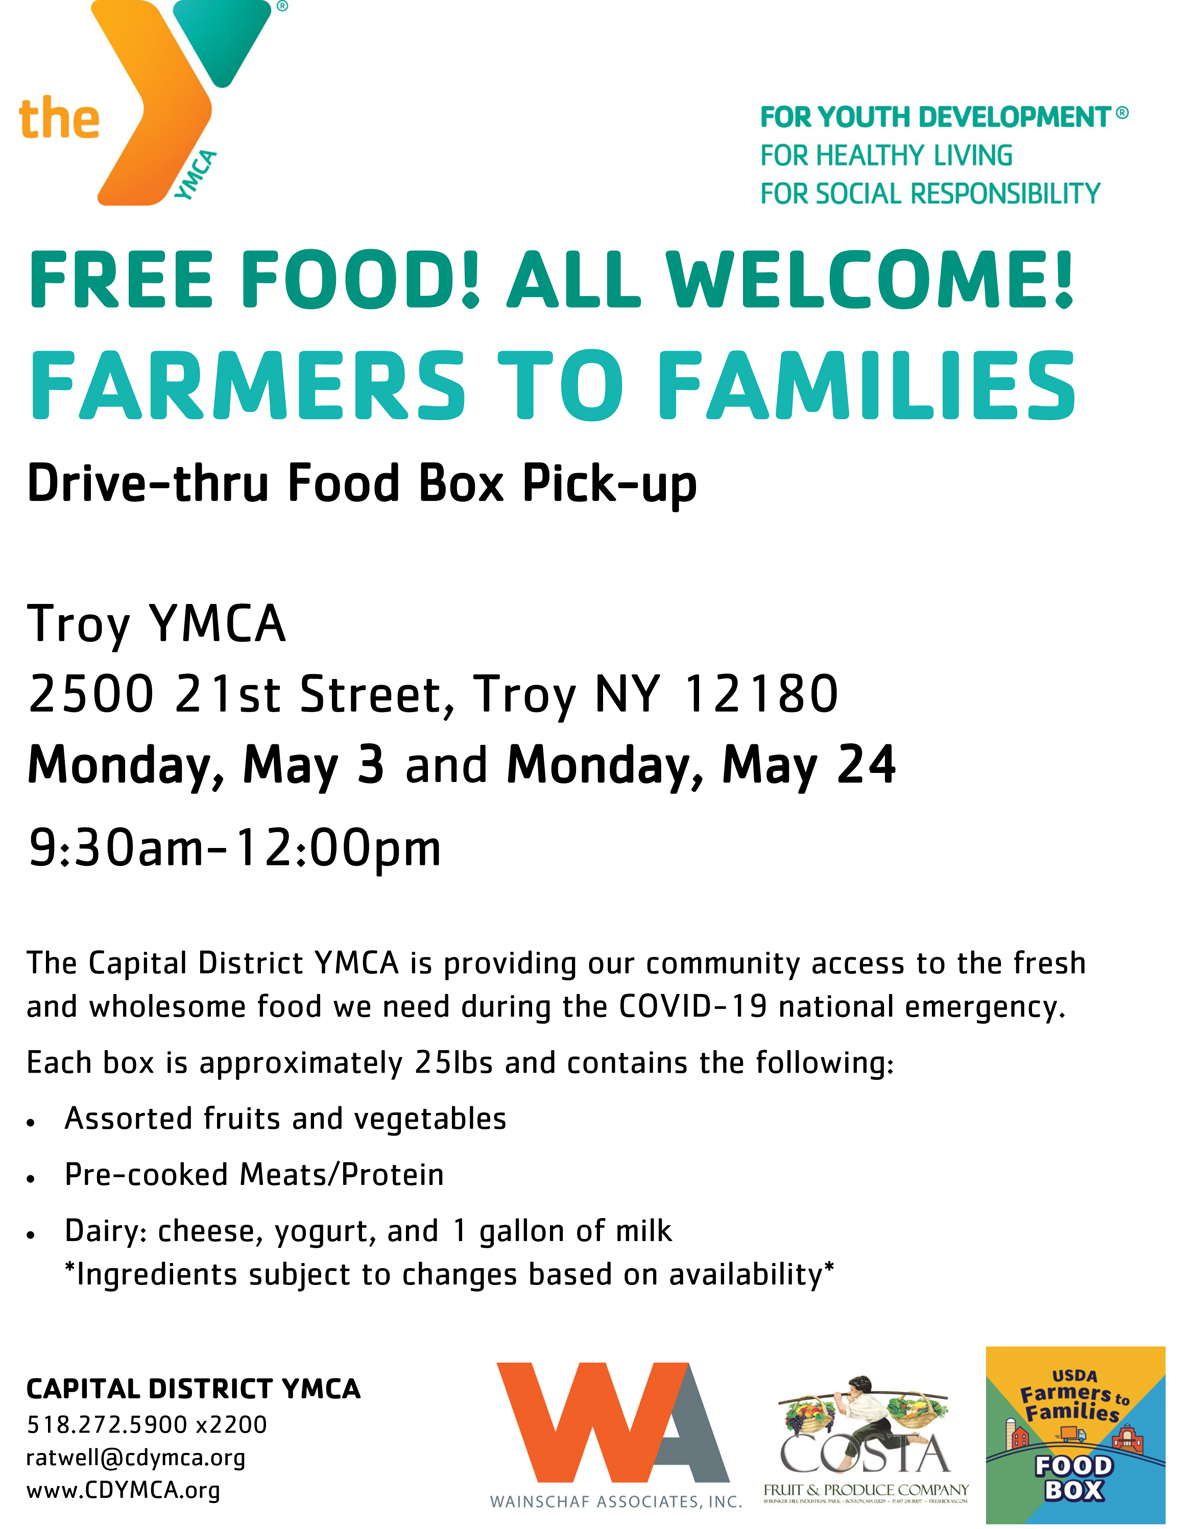 Troy YMCA Farmers to Families flyer